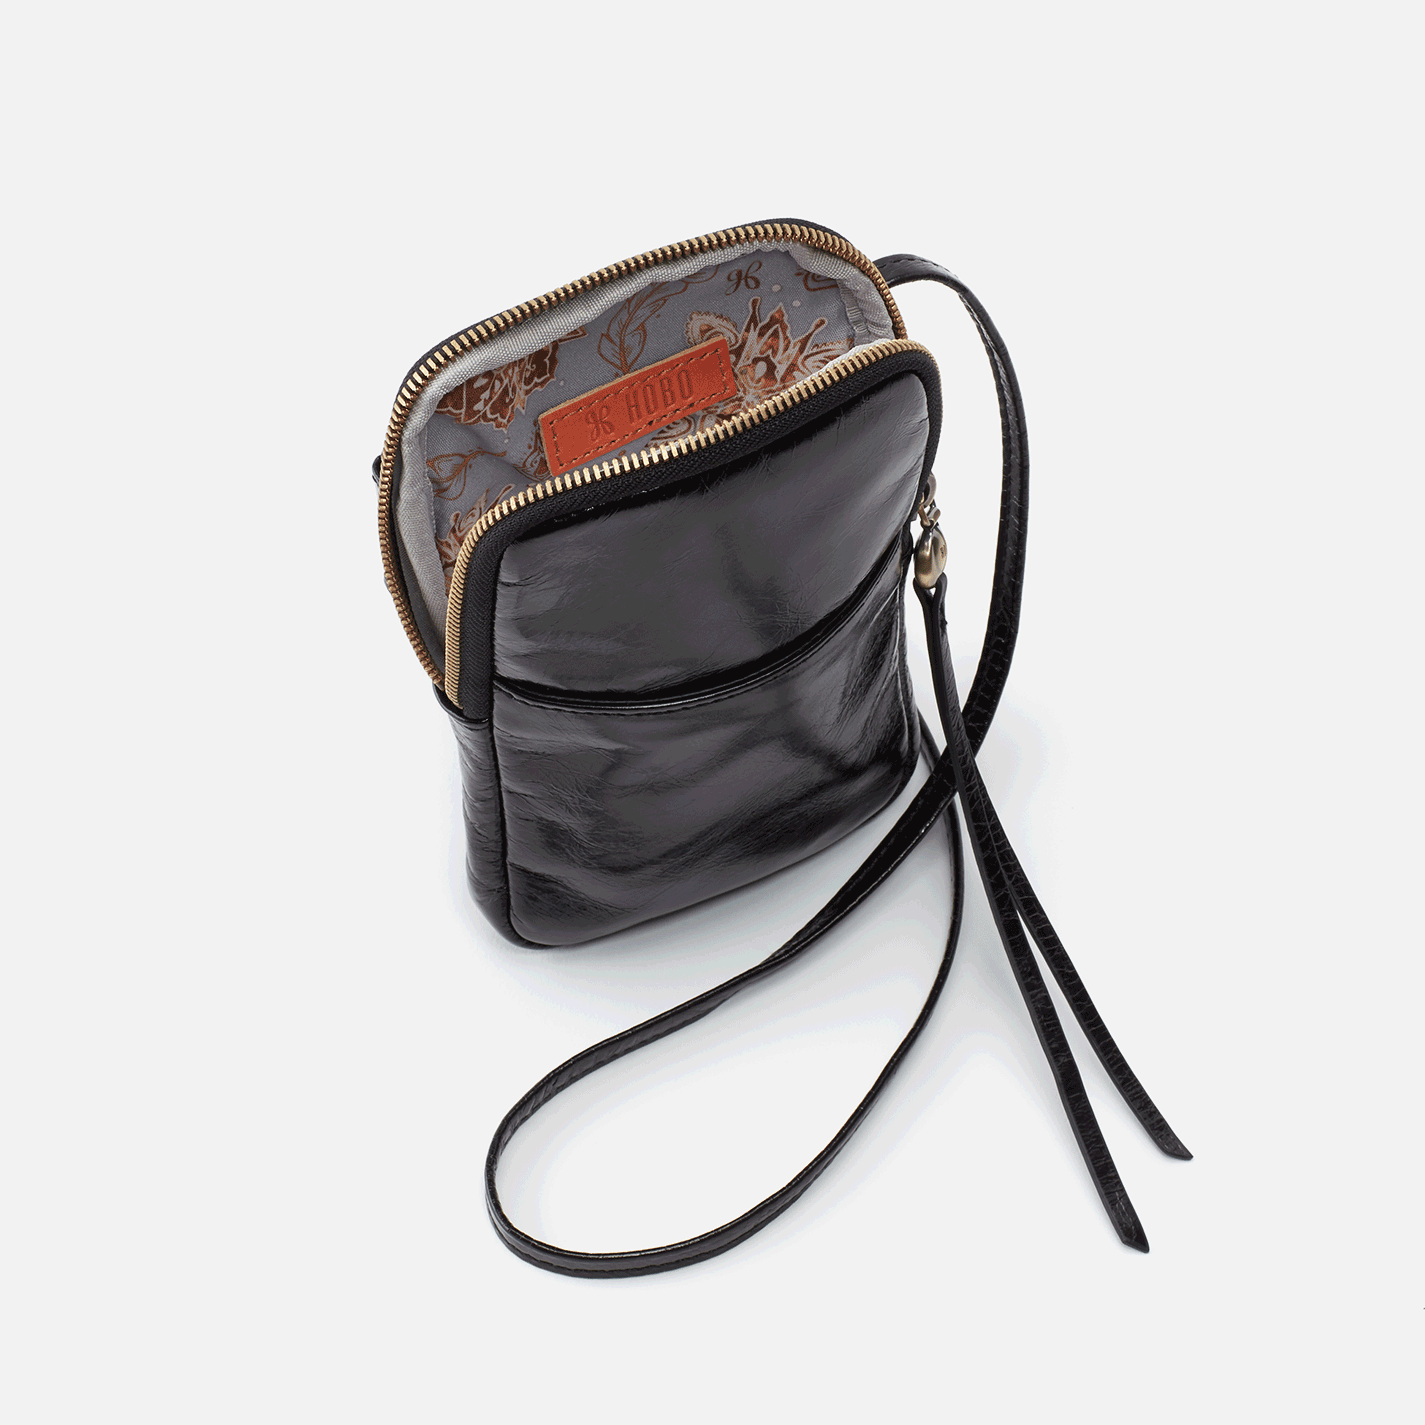 HOBO - FATE CROSSBODY IN BLACK